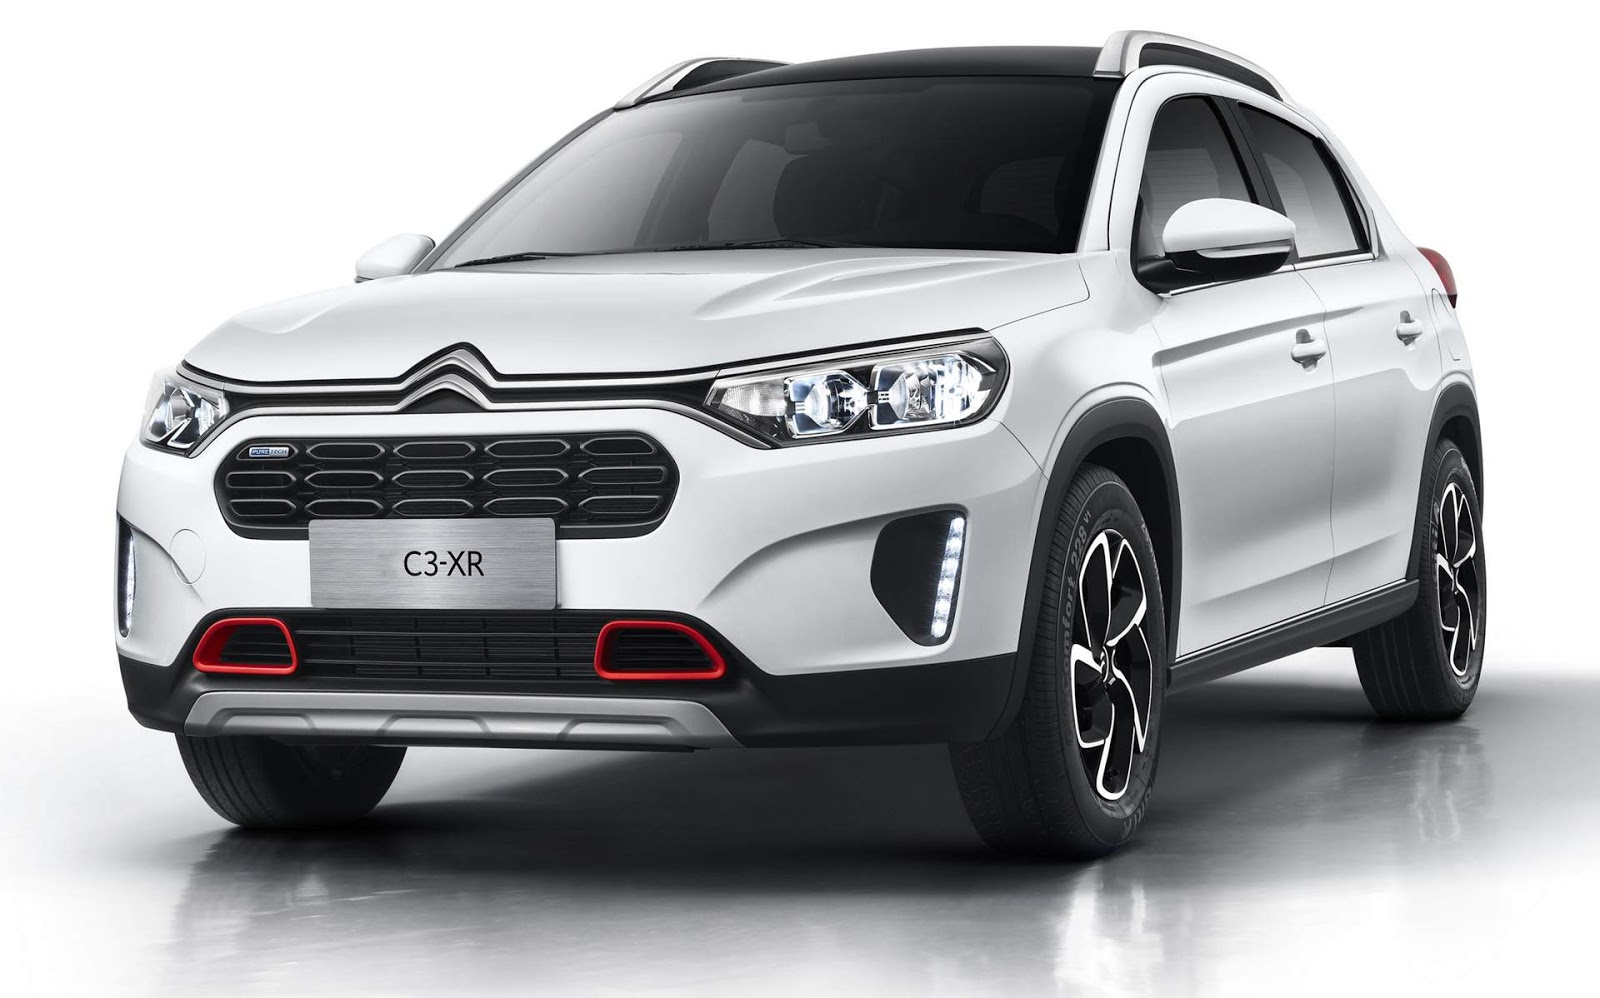 novo citroen aircross 2020 chega ao mercado em outubro car blog br. Black Bedroom Furniture Sets. Home Design Ideas